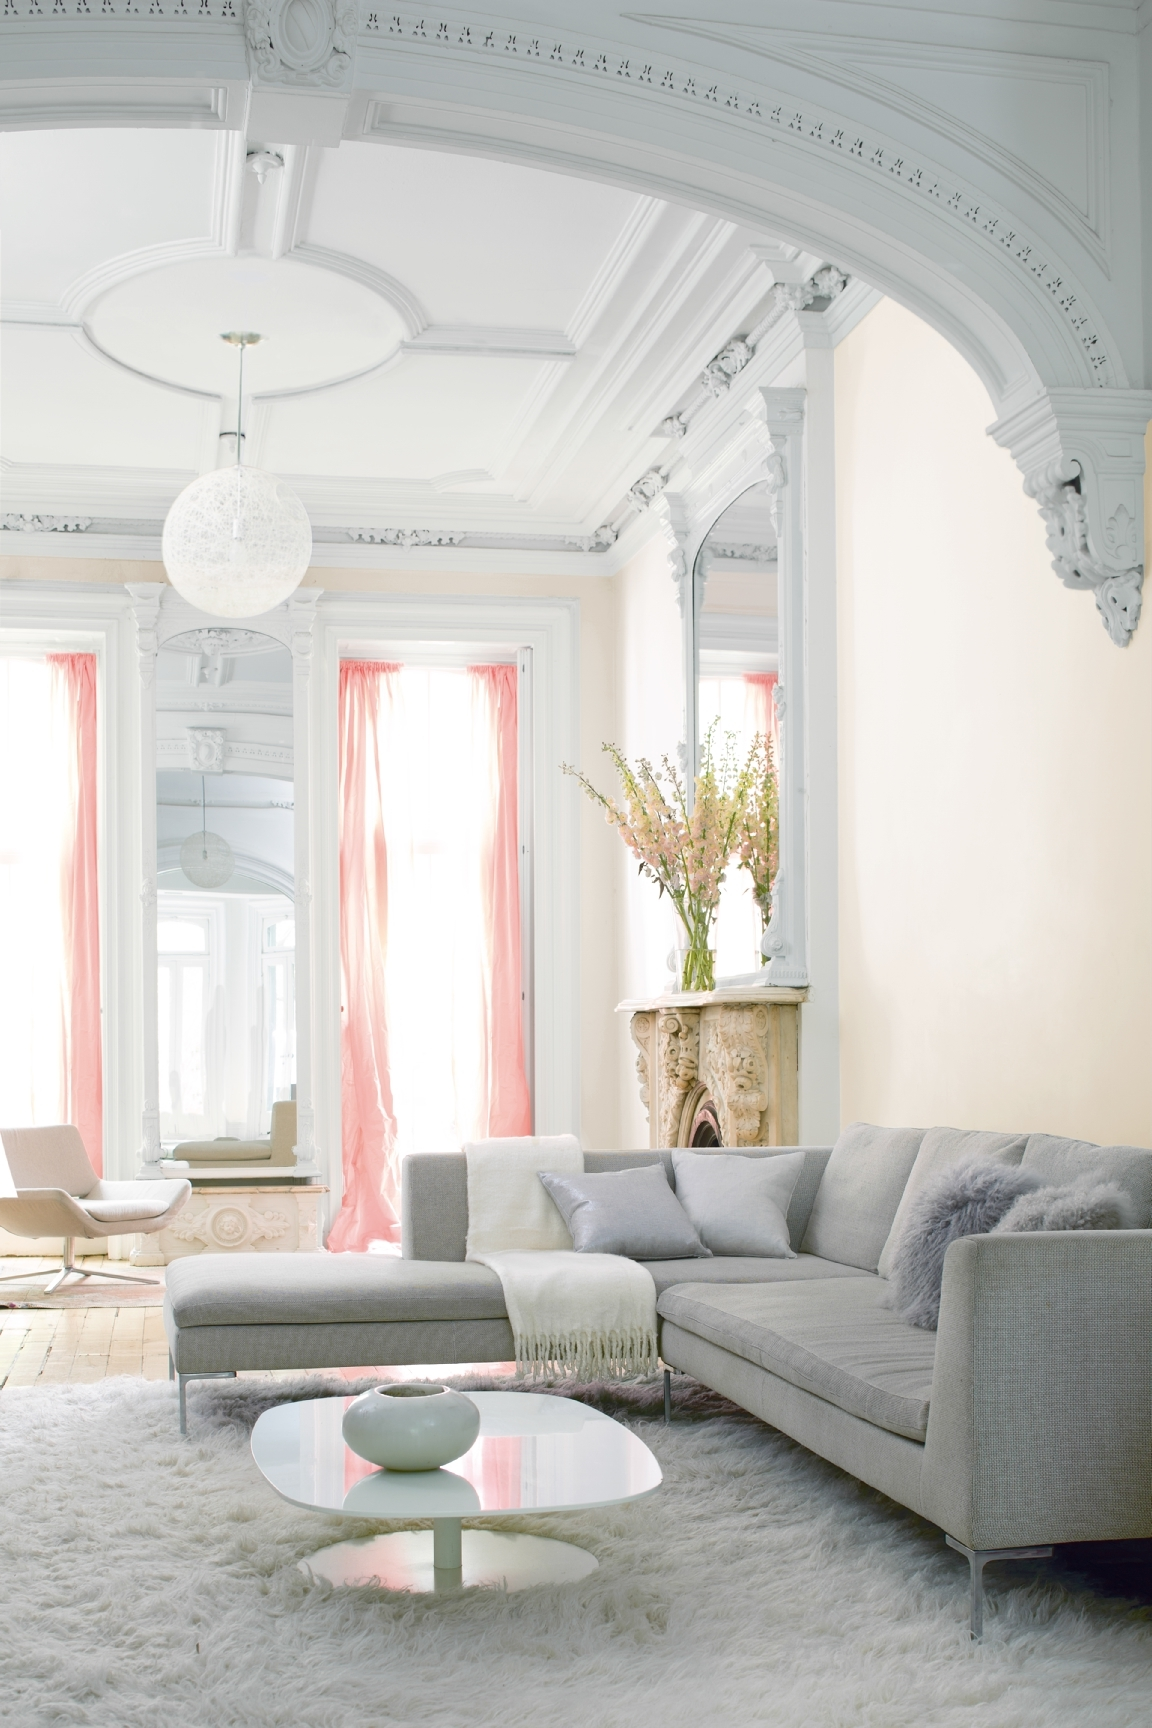 Color changes everything when it comes to a more minimalist decorating style. Shift into neutral by using white as a blank canvas for art and furnishings. Walls are in Benjamin Moore's Pink Damask in eggshell (OC-72) and ceiling and trim in semi-gloss Chantilly Lace in (OC-65).